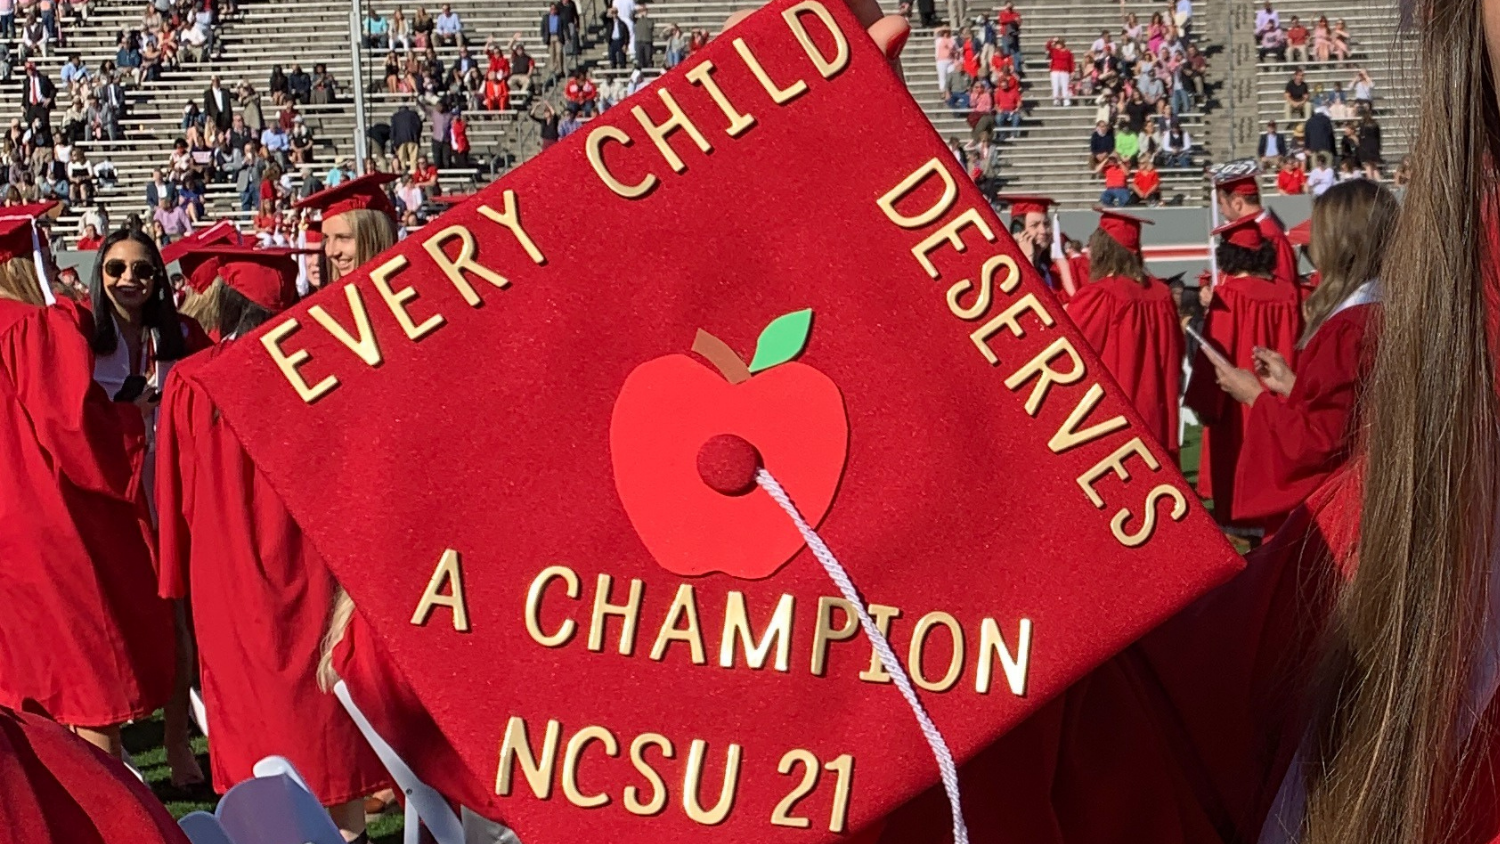 Graduation cap with message that every child deserves a champion